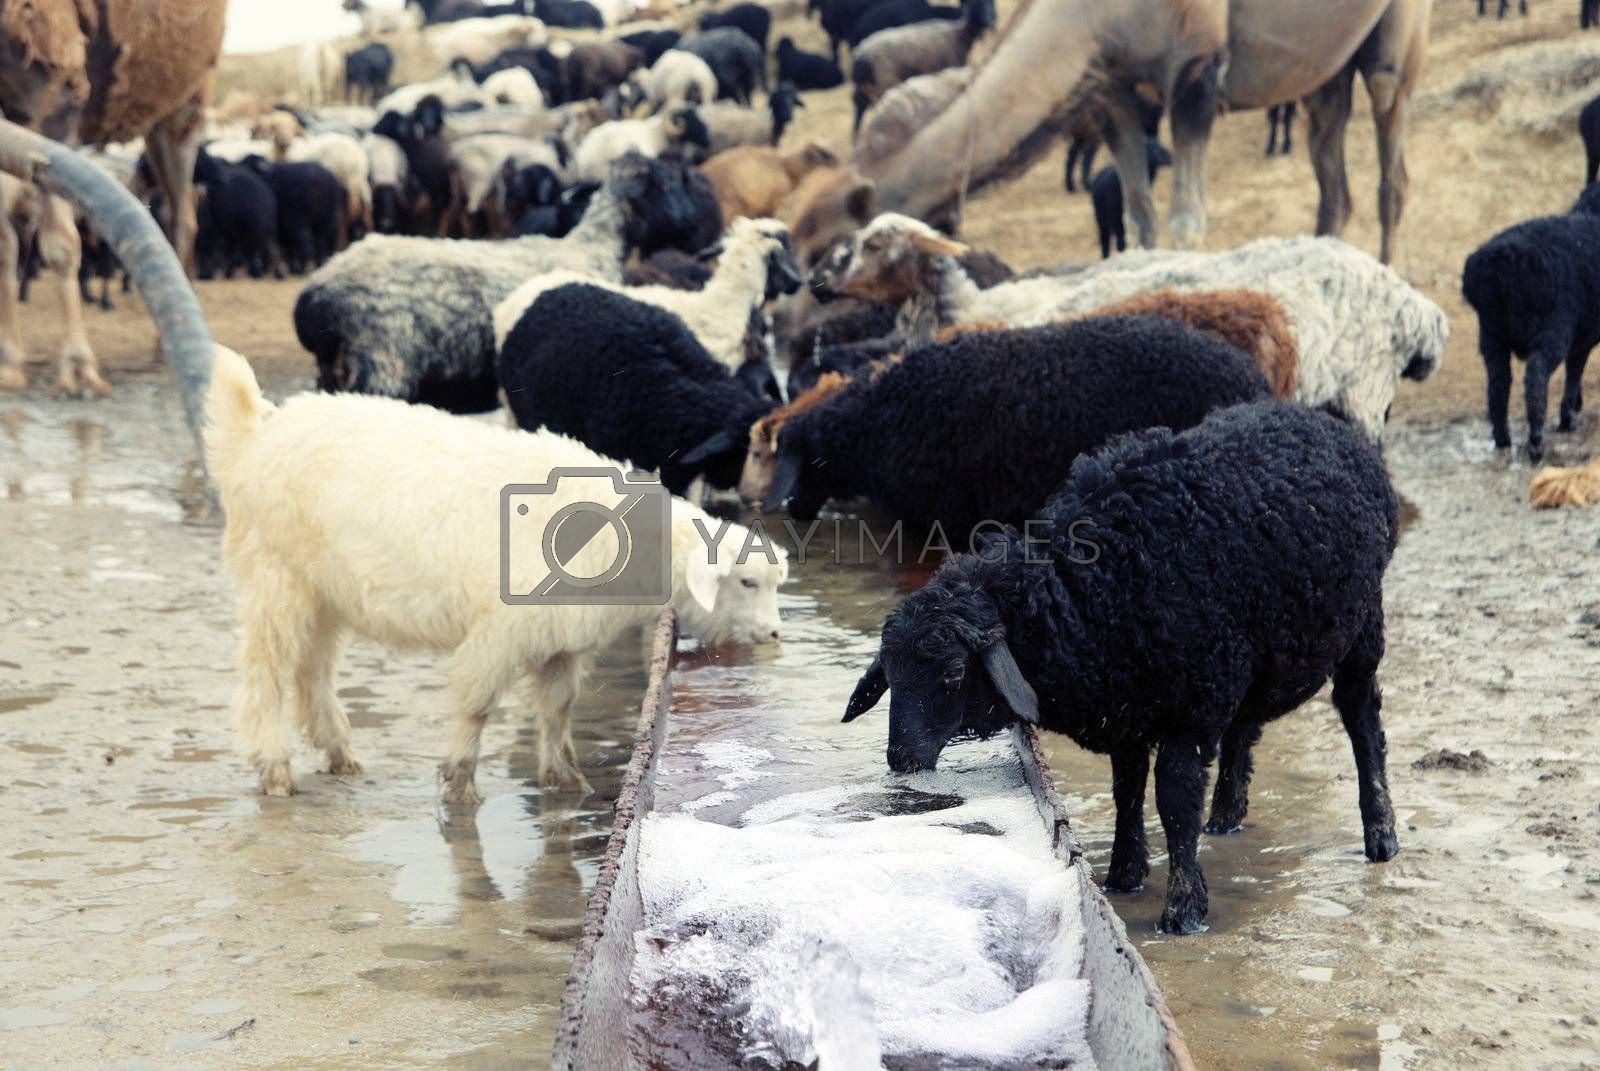 Sheep drinking at the watering place. Middle Asia. Natural light and colors